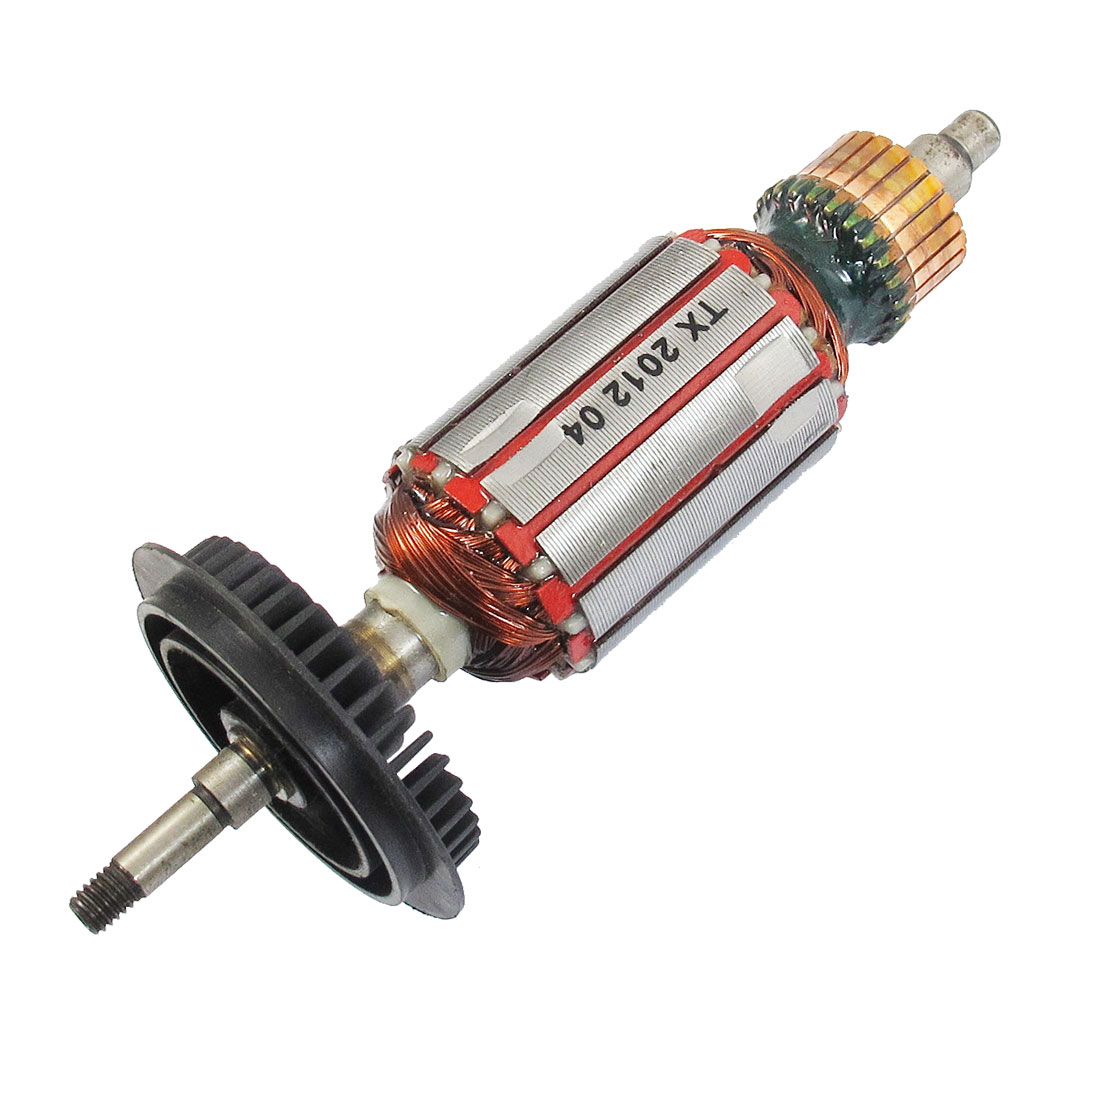 AC 220V 6mm Drive Shaft Electric Motor Rotor for Bosch GWS 6-100